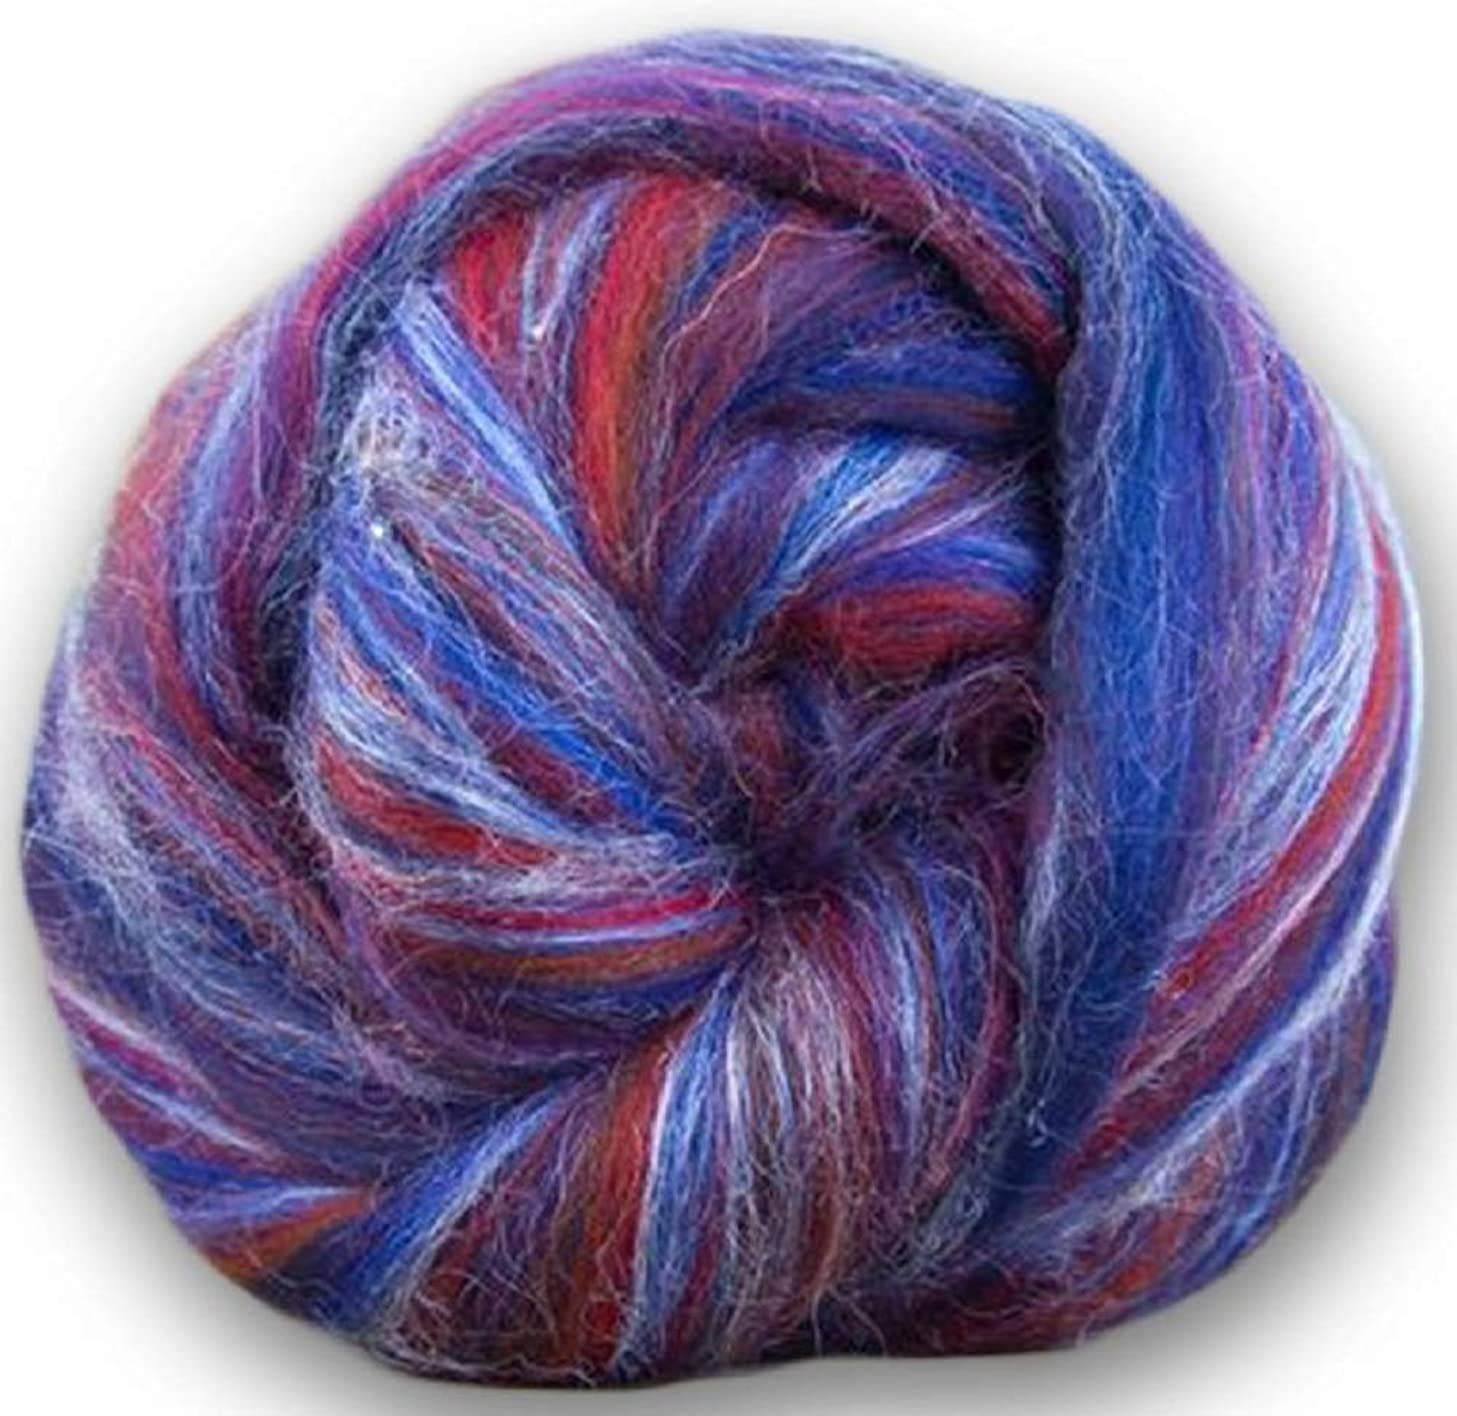 4 oz Paradise Fibers Soft & Silky Constellation Range Gemini - 70% 23 Micron Solid Color Merino Wool and 30% Bleached Tussah Silk Blend